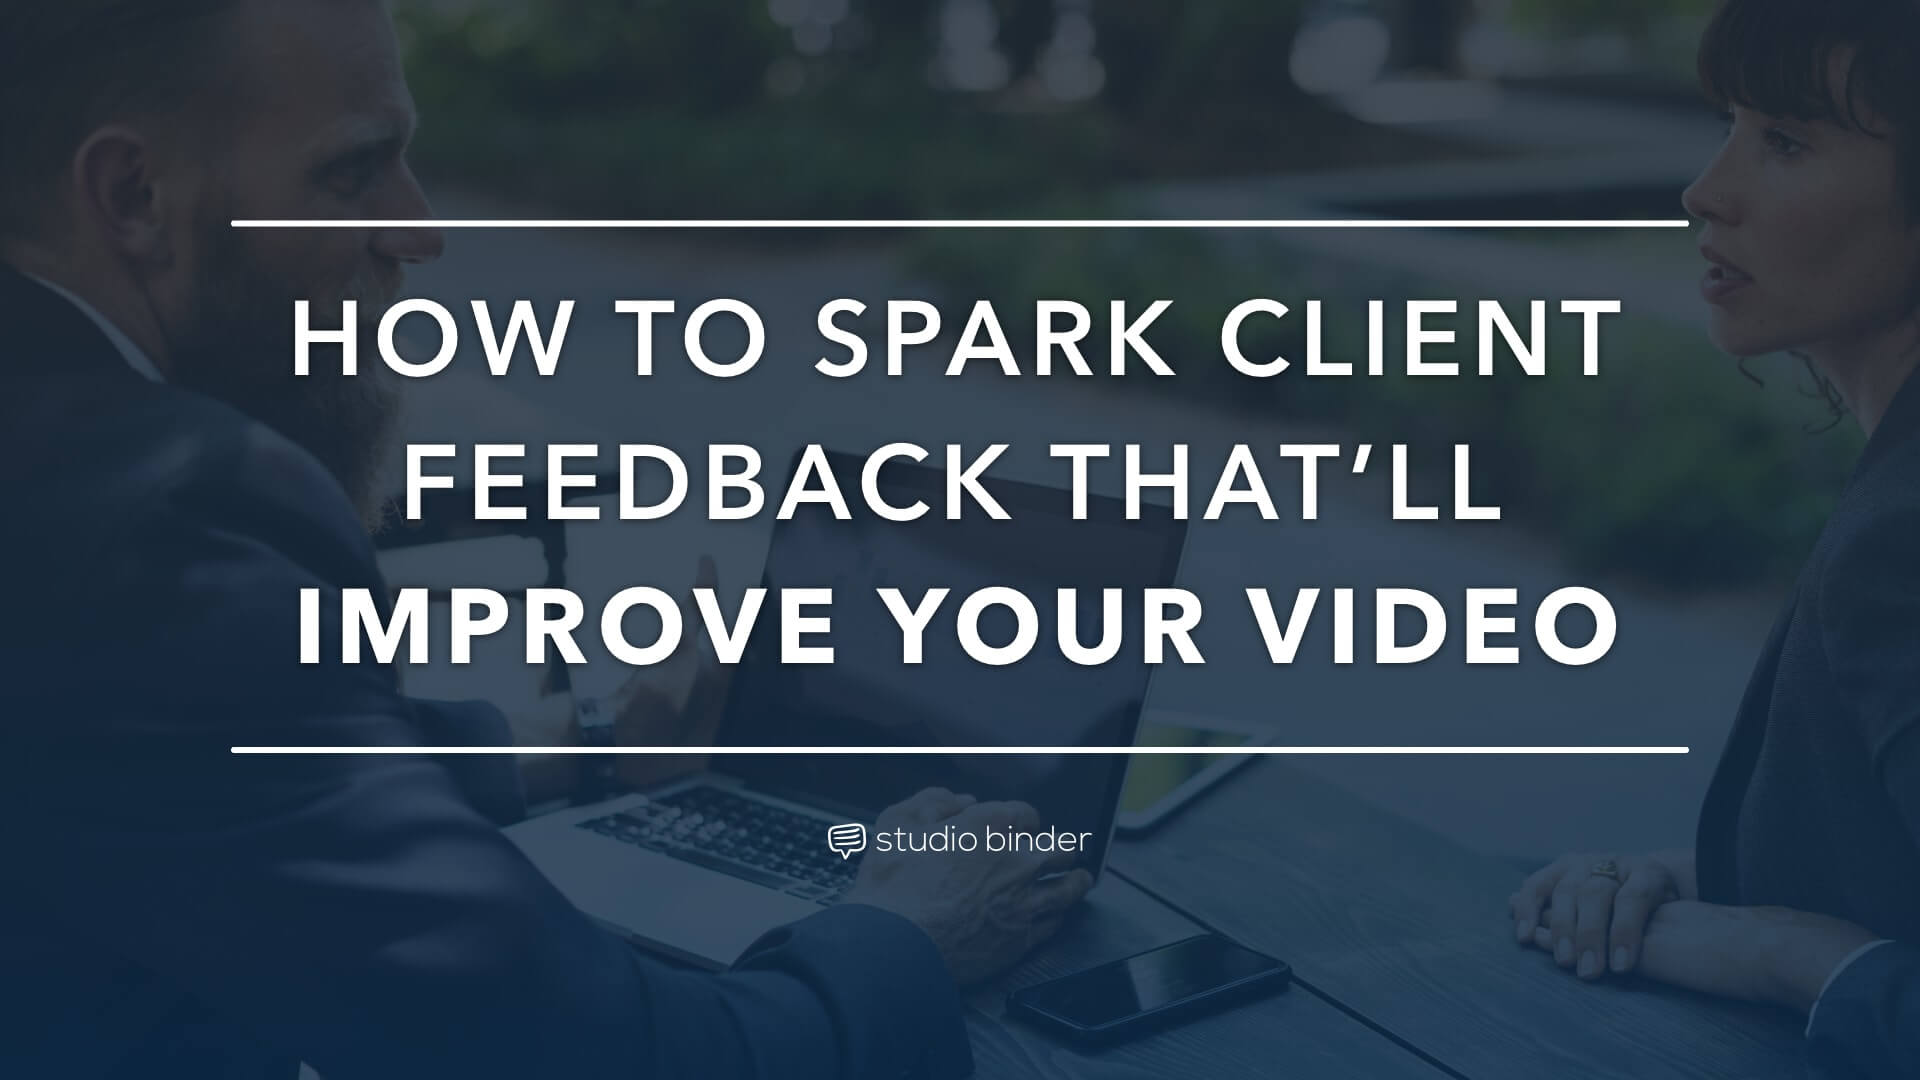 How to Spark Client Feedback That'll Improve Your Video - Featured - StudioBinder